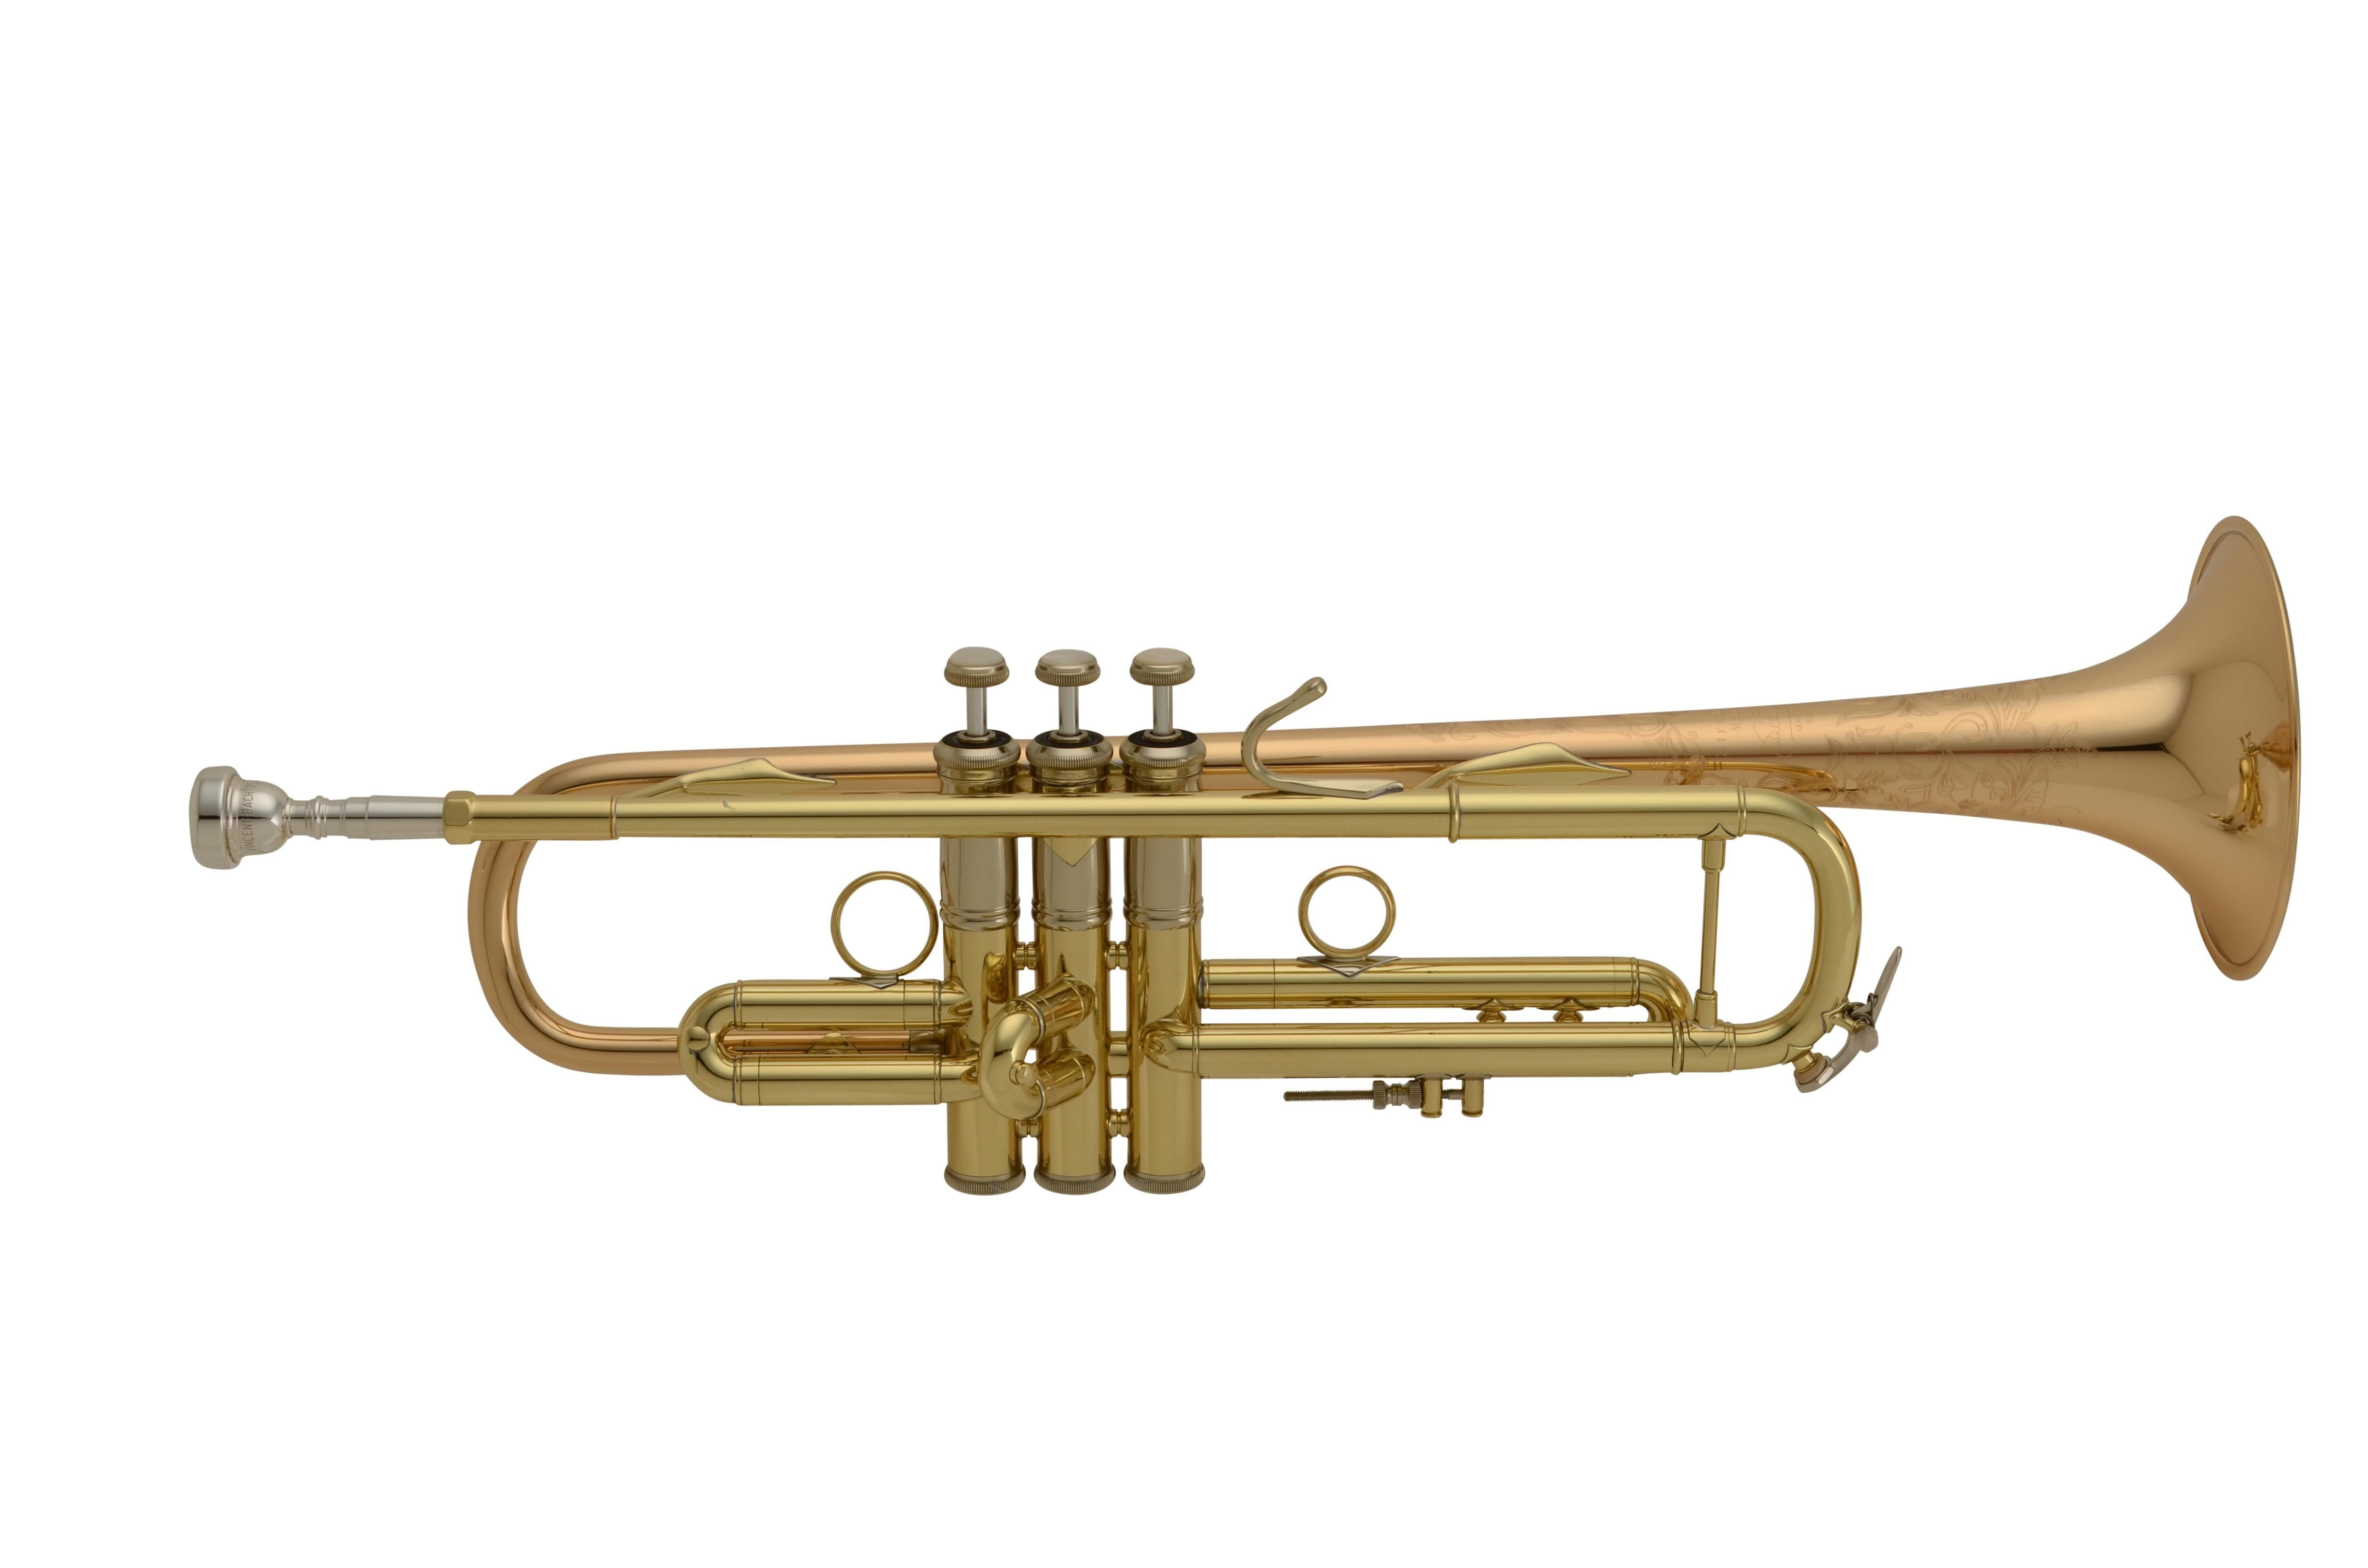 Trumpet Wallpapers - Top Free Trumpet